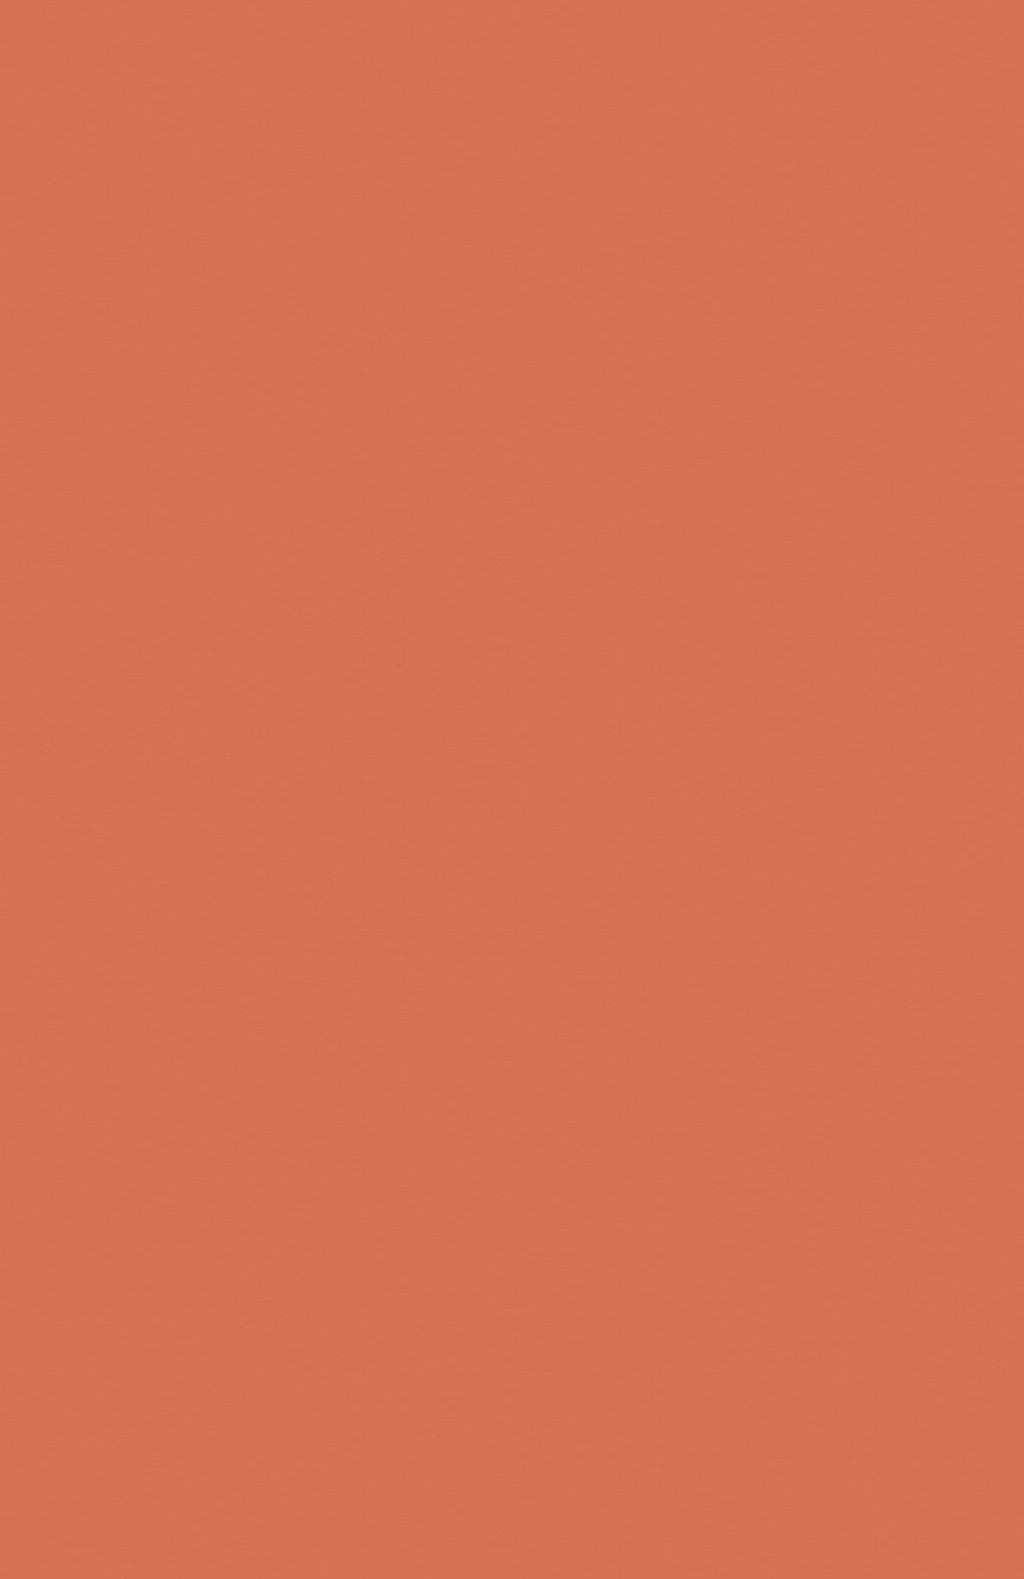 The Hydrocyclone Ebook Orange Paint Colors Solid Color Backgrounds Sherwin Williams Paint Colors